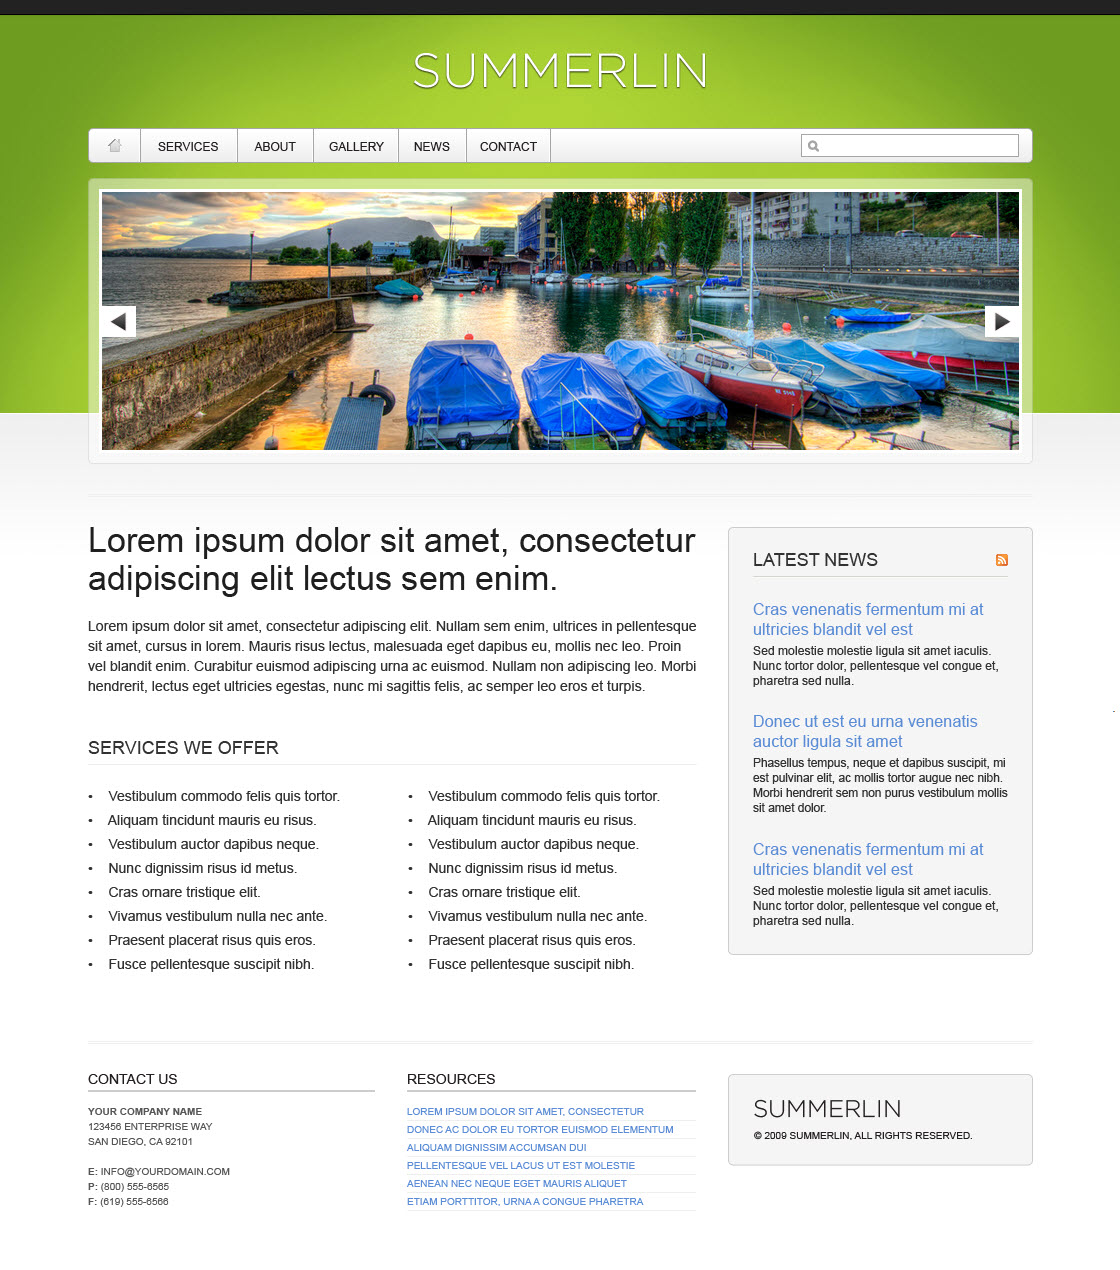 Summerlin - 8 in 1 - Premium XHTML/CSS Template